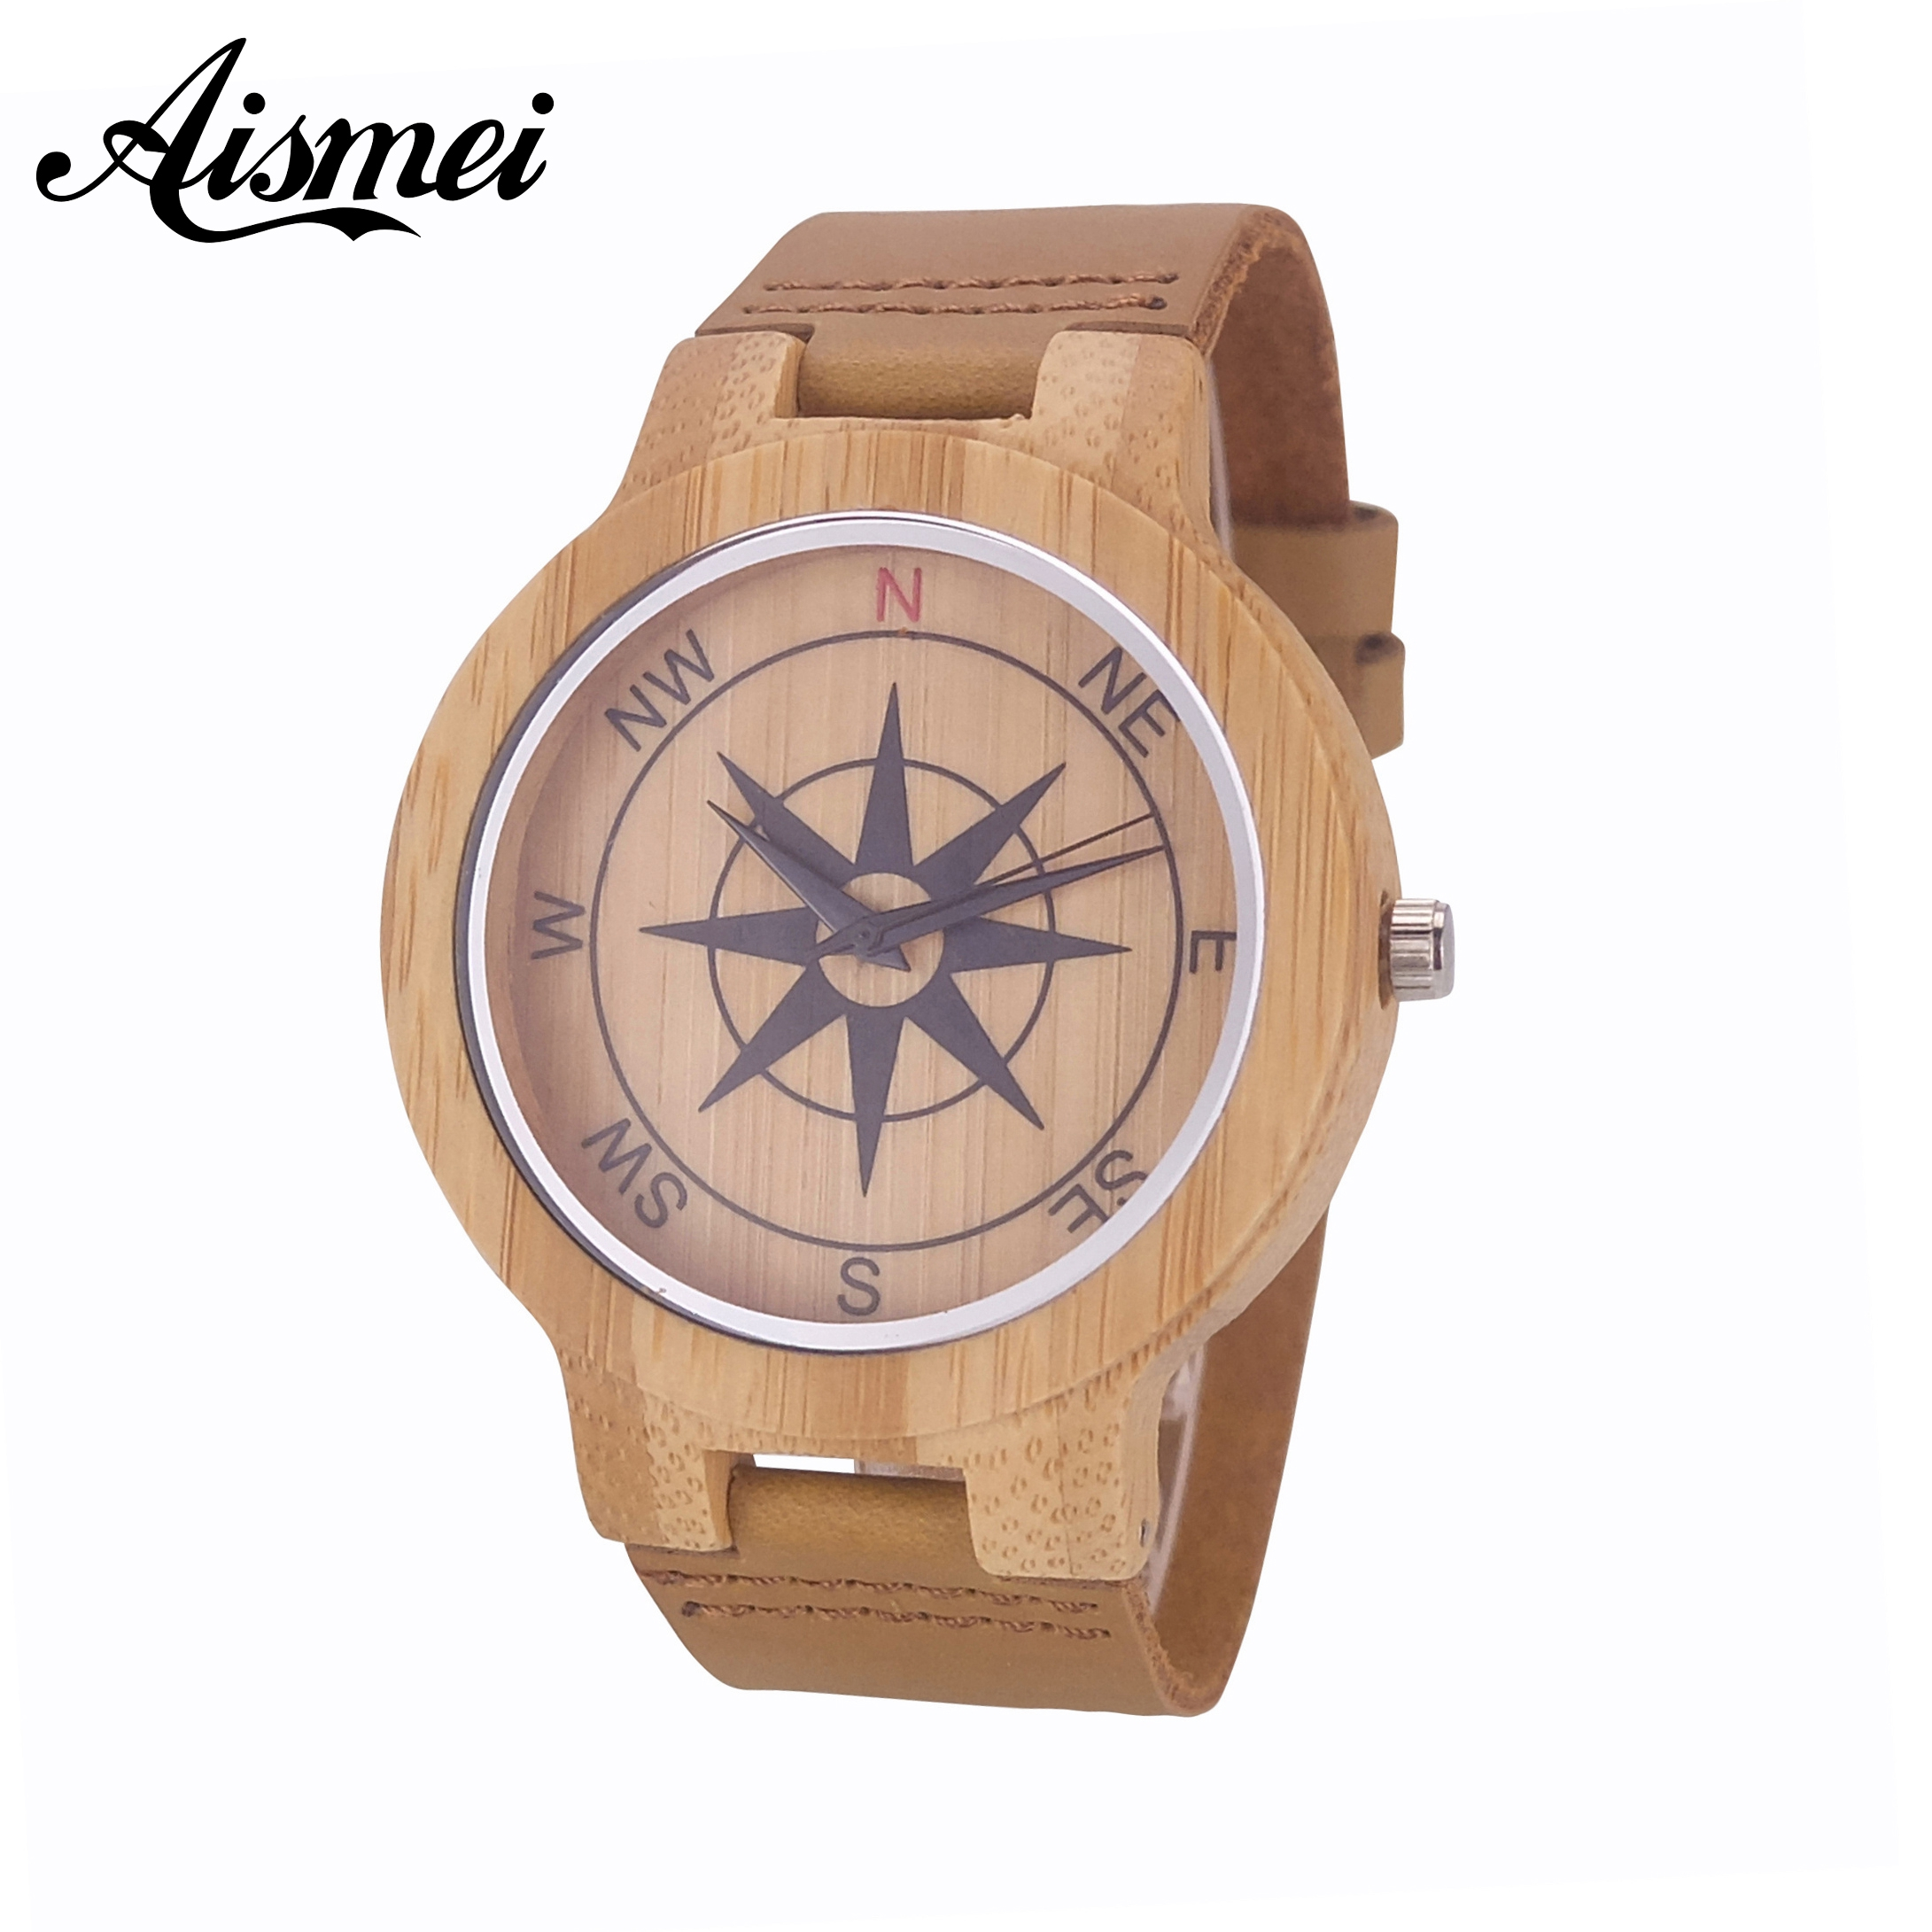 2018 New Design Compass Dial Bamboo Wood Watches for Men and Women Fashion Casual Leather Strap Wrist Watch Male Female Relogio bamboo wood watches for men and women fashion casual leather strap wrist watch male relogio